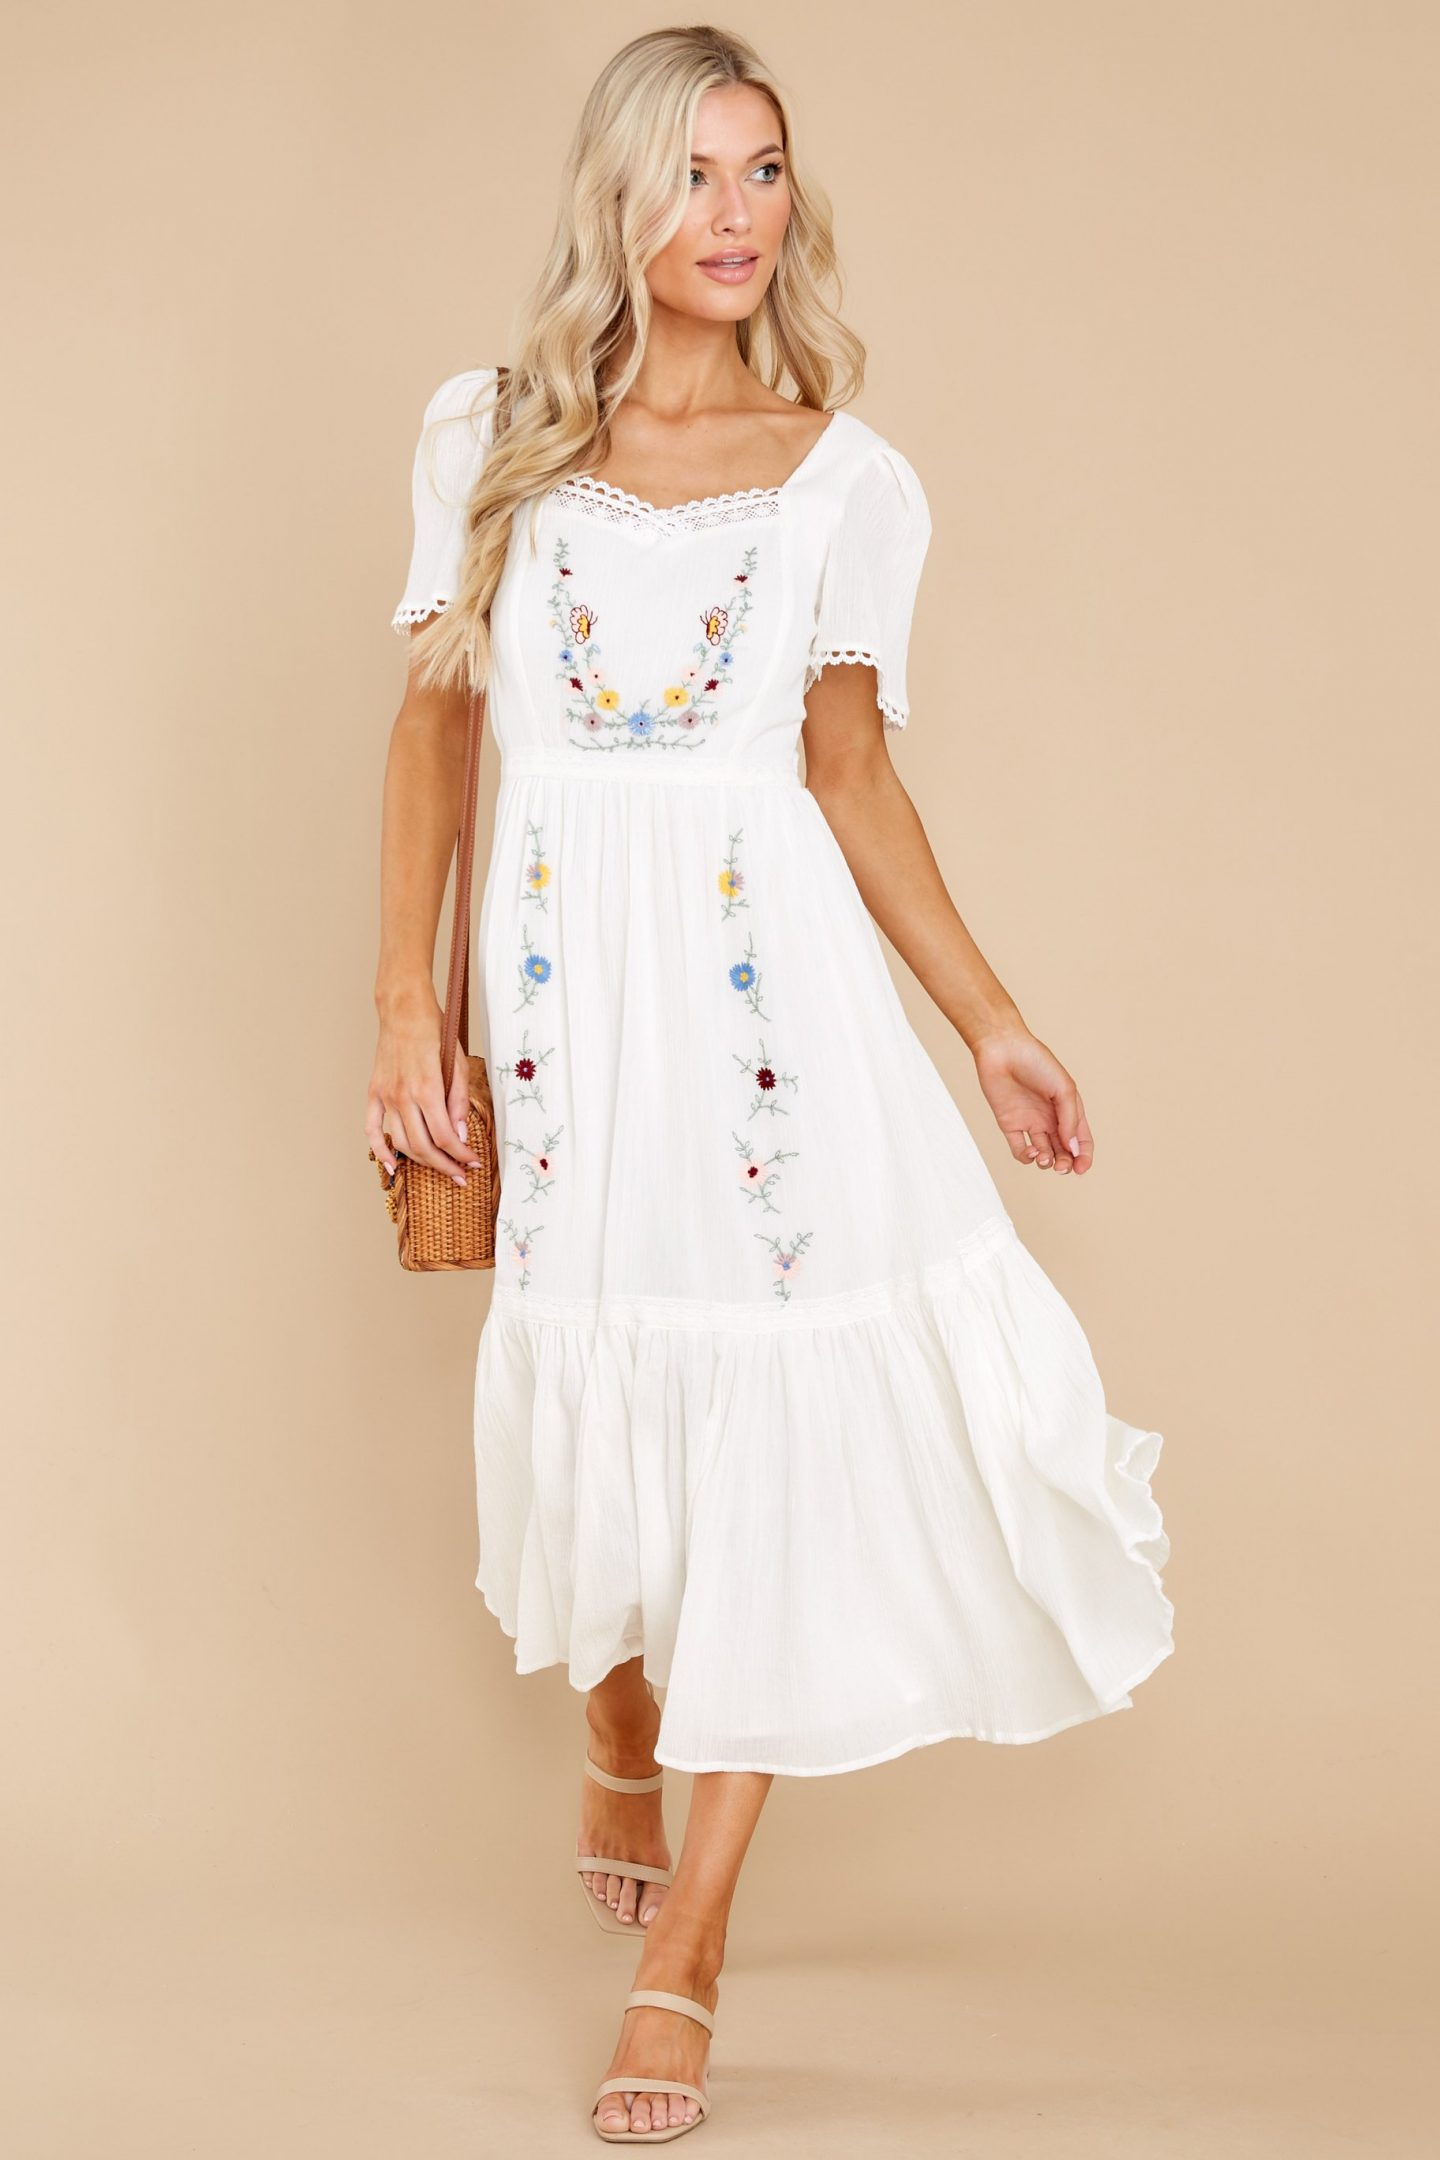 White midi cottagecore dress with floral embroidery